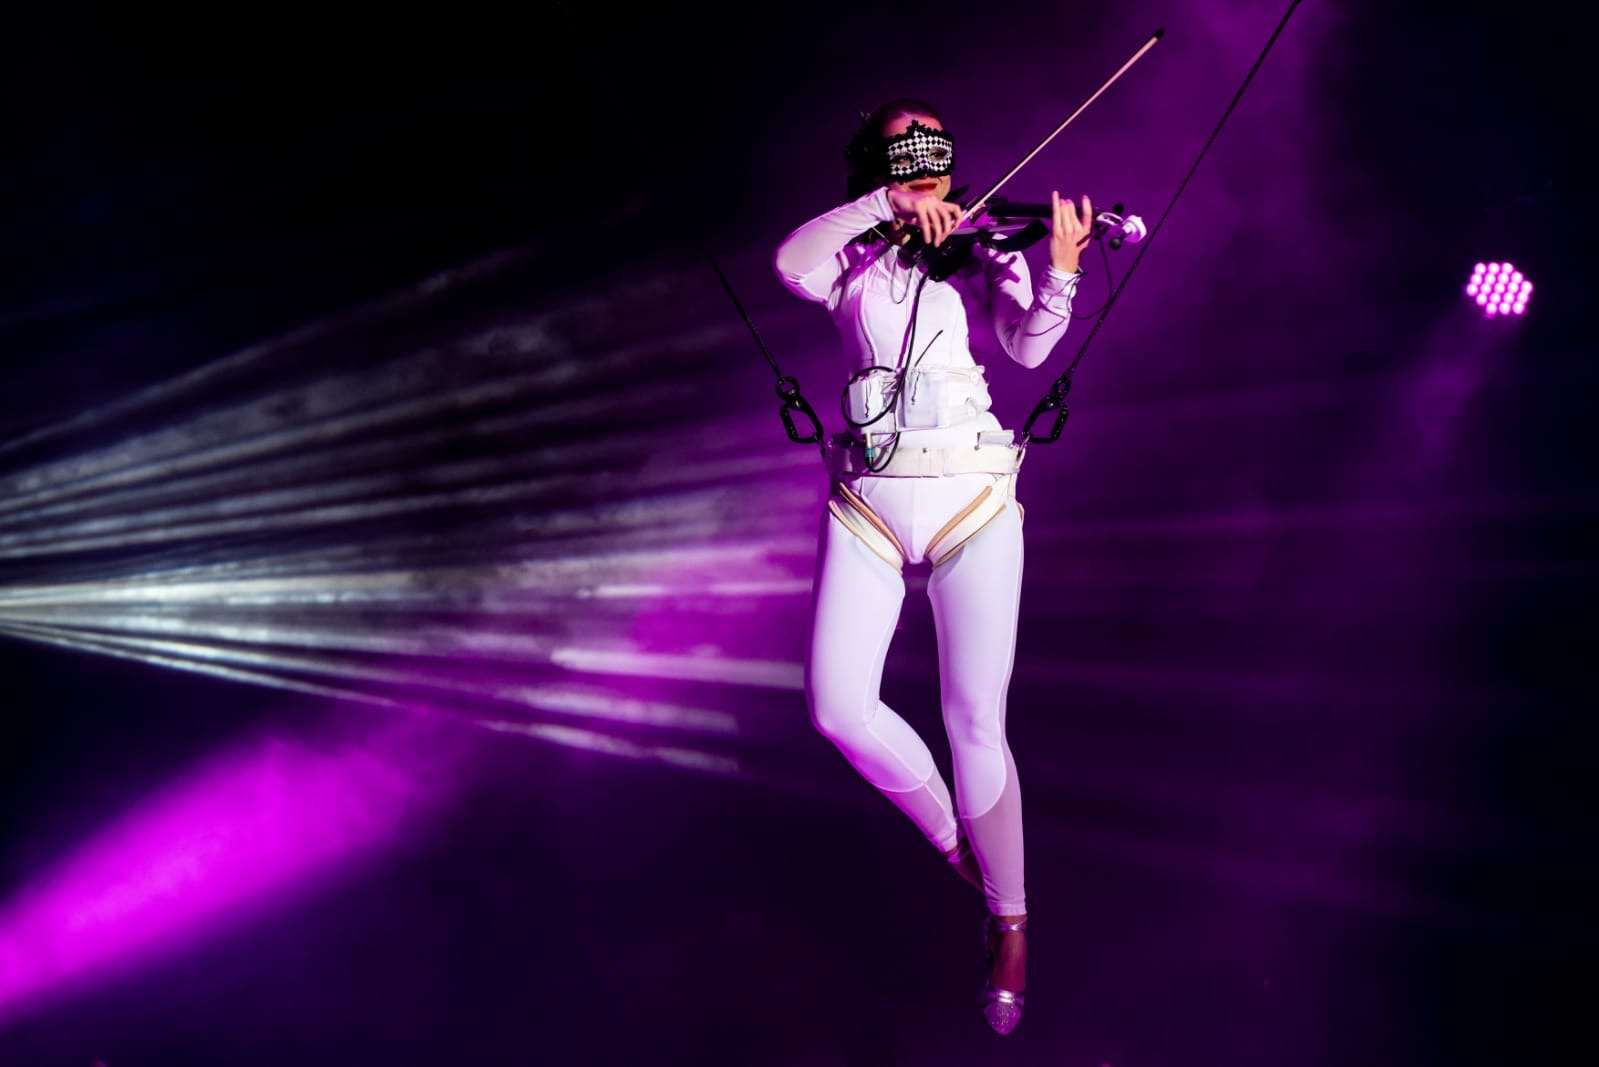 Flying-Violine-Showact-01